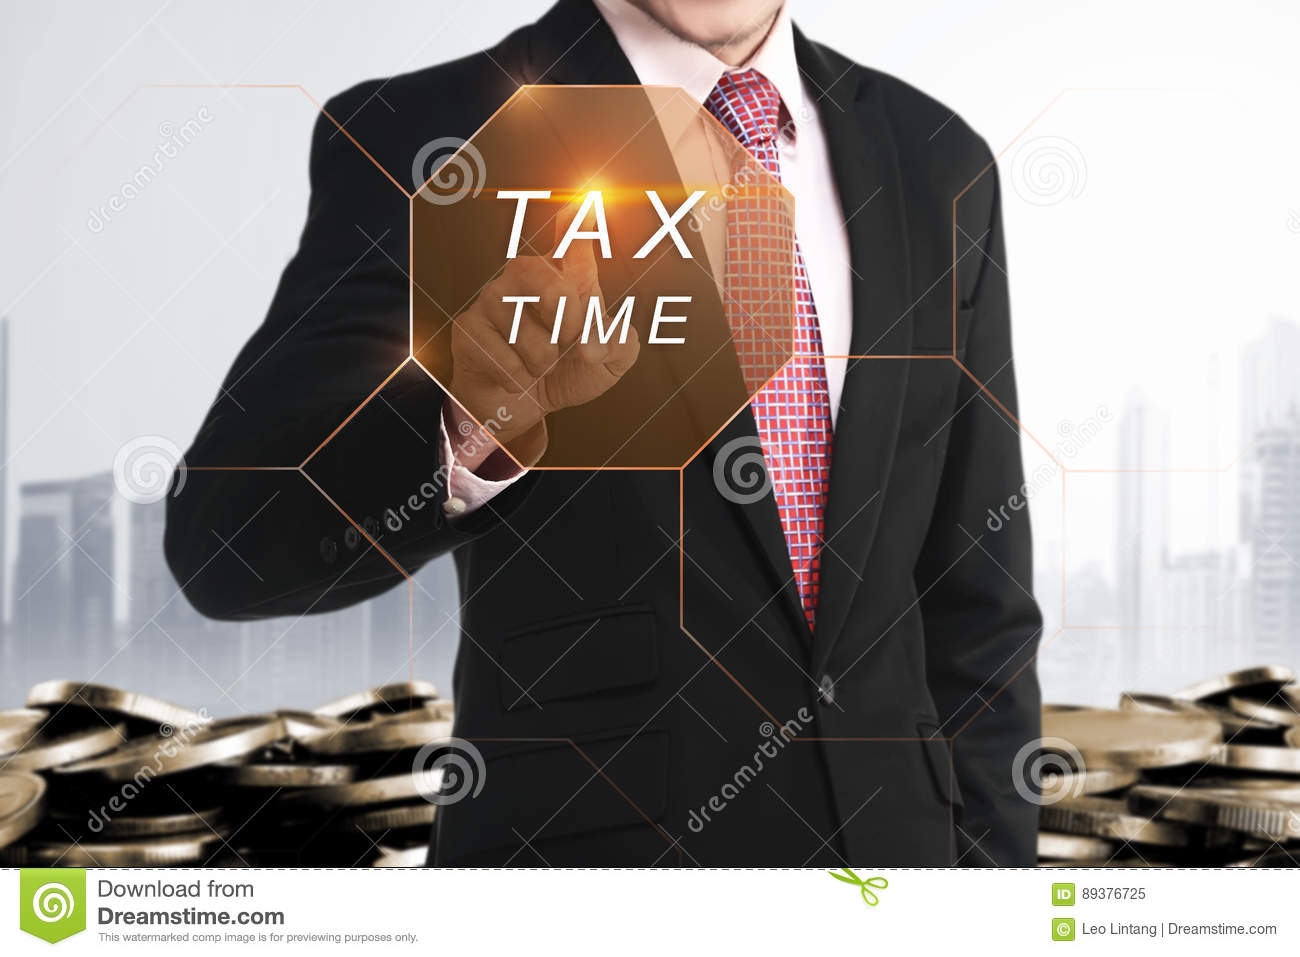 Businessman hand touching Tax Time button